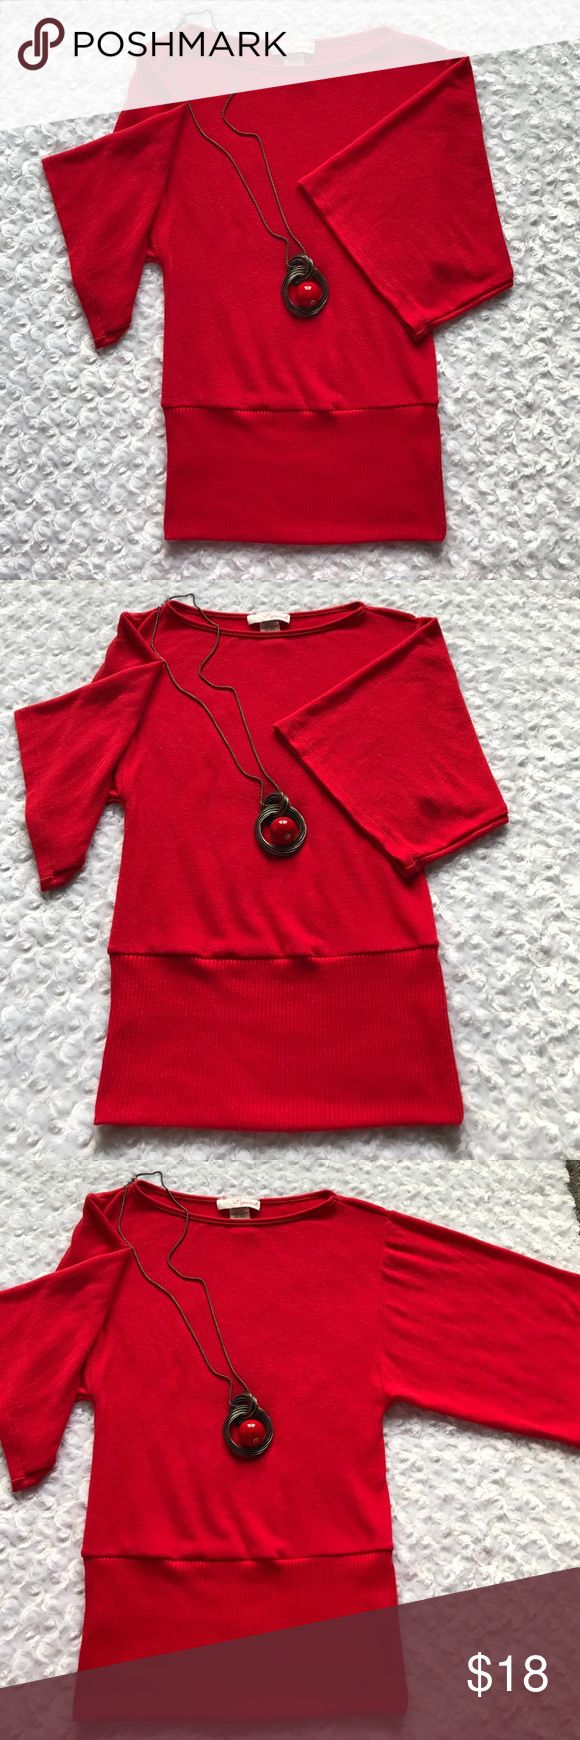 "CHERRY RED KNIT TOP Beautiful Cherry Red top with a boat neckline. Batwing style sleeves 11"" long. Bust 32/34"" Waist 12.5"". 62% Rayon. 33% Polyester. 5% Spandex. Great for work or day wear. Lipstick Tops"